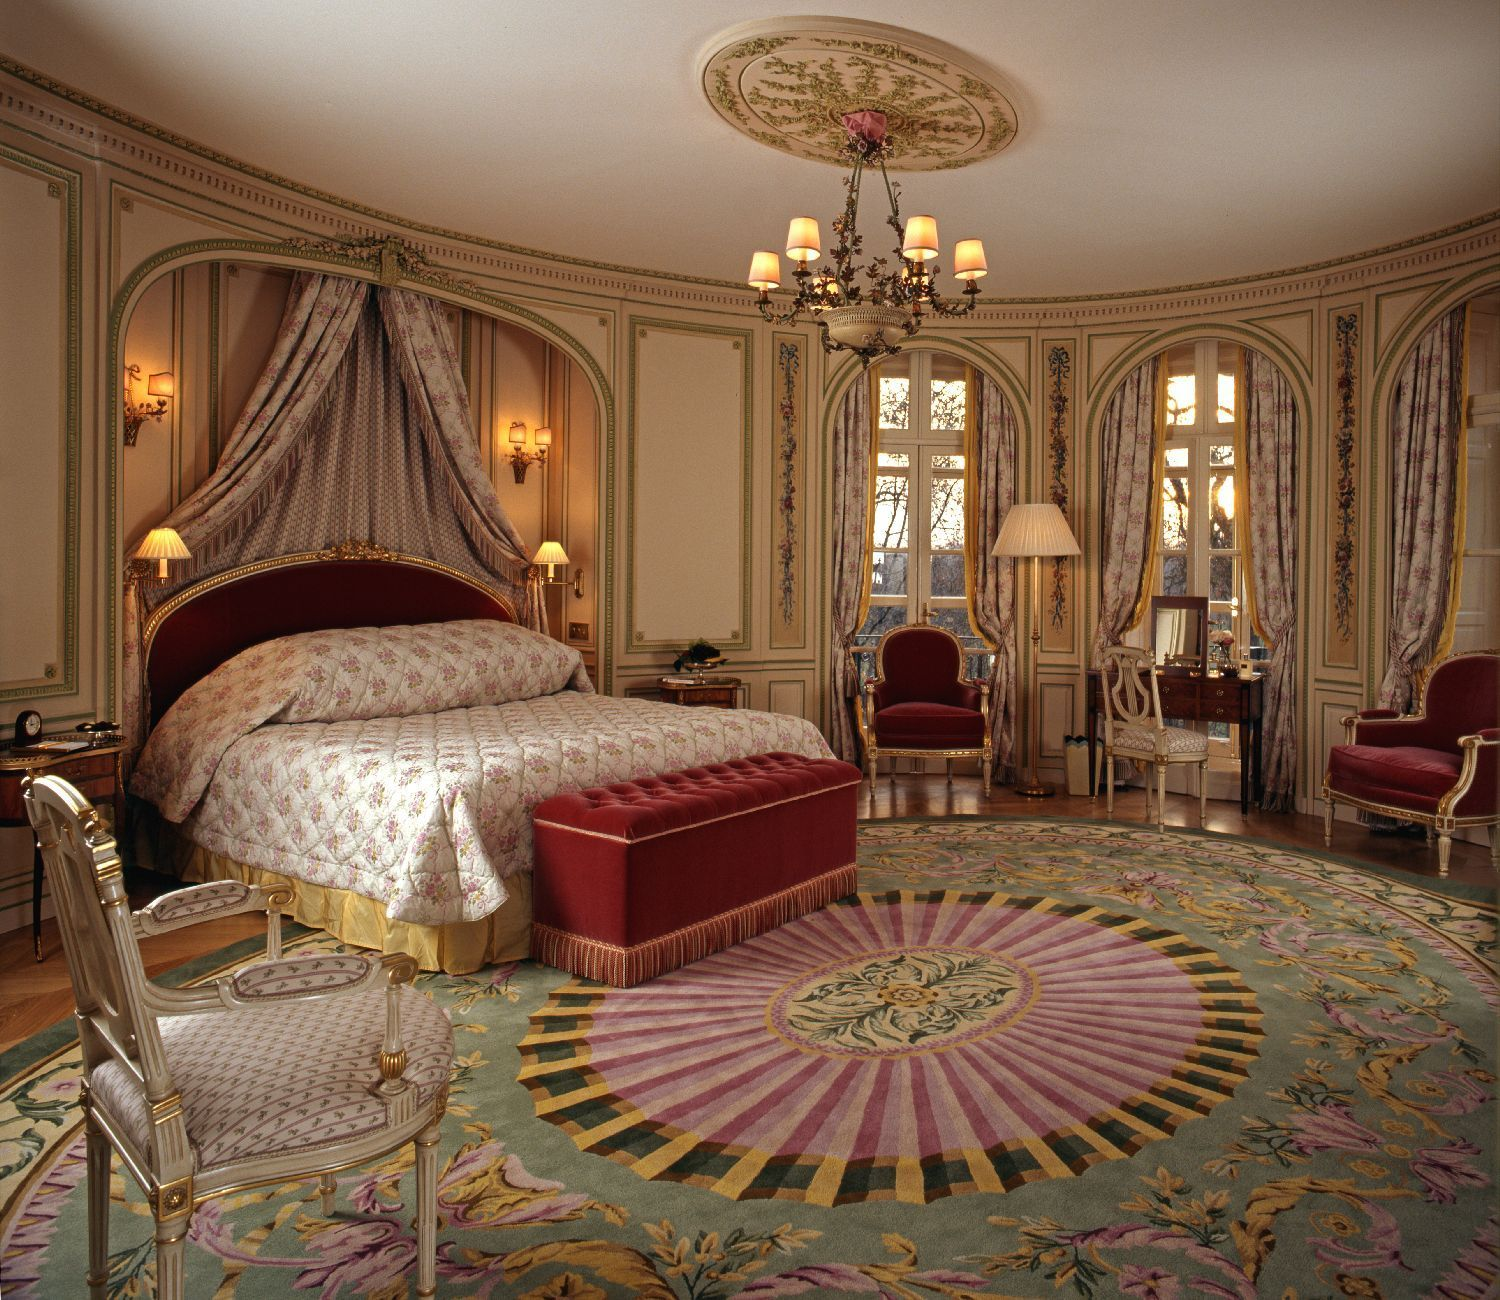 Check out The Royal Bedroom Suite at the London Ritz from Most ...